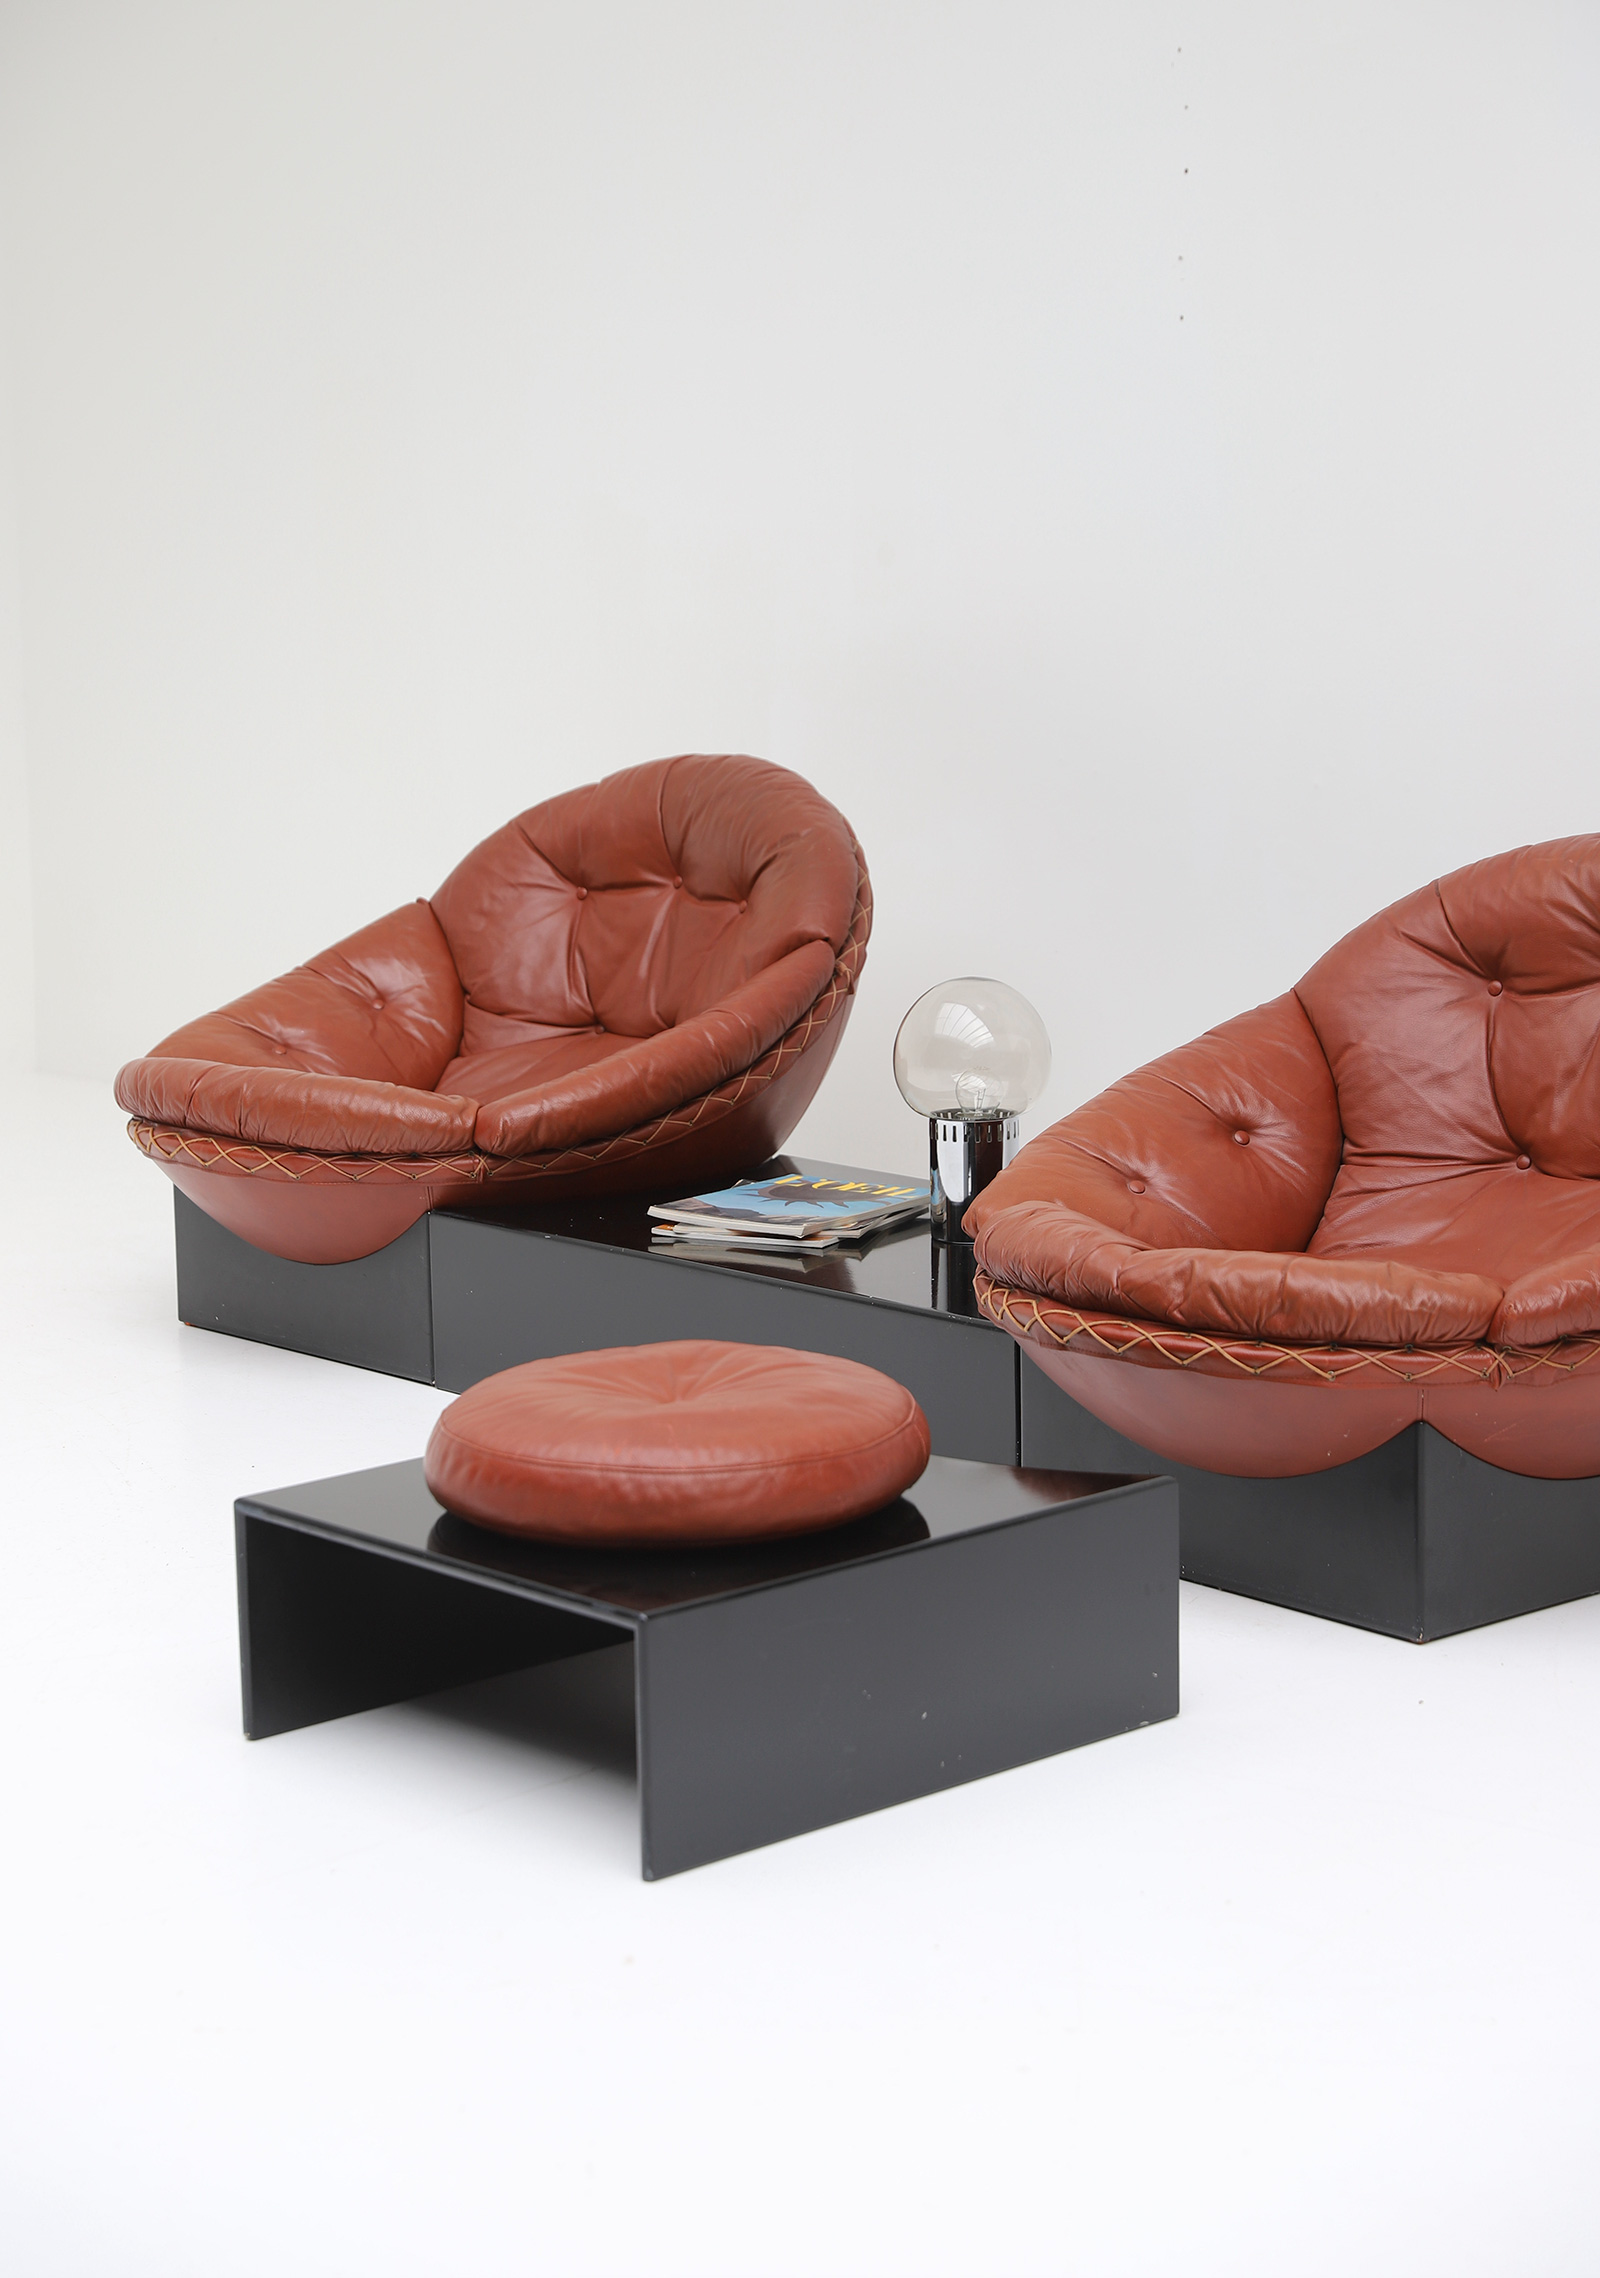 Leather Lounge Chairs by Illum Wikkelso for Ryesberg 1970simage 4